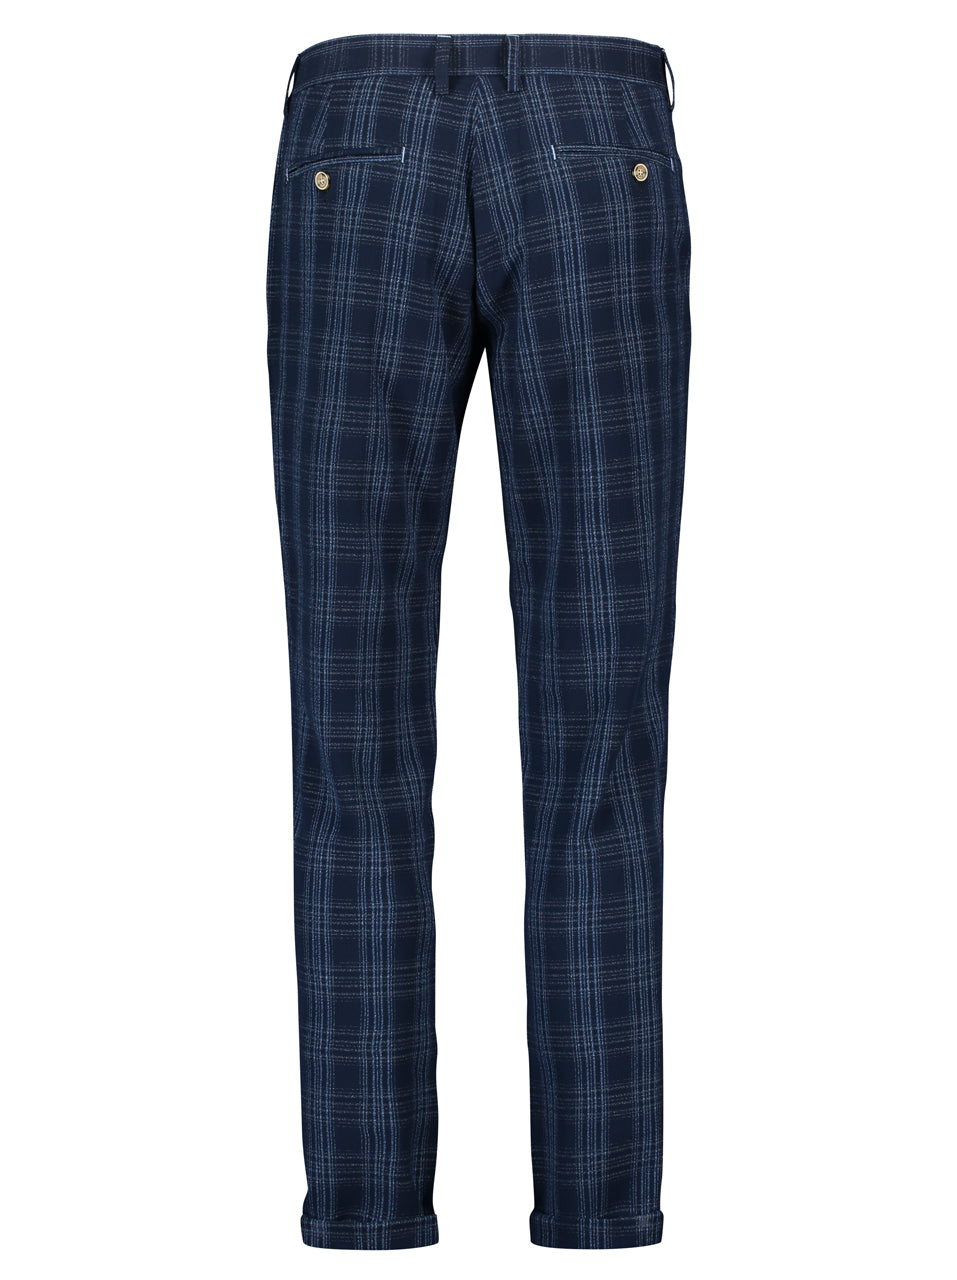 A Fish Named Fred - Sports Pant in Navy Broken Check - MitchellMcCabe